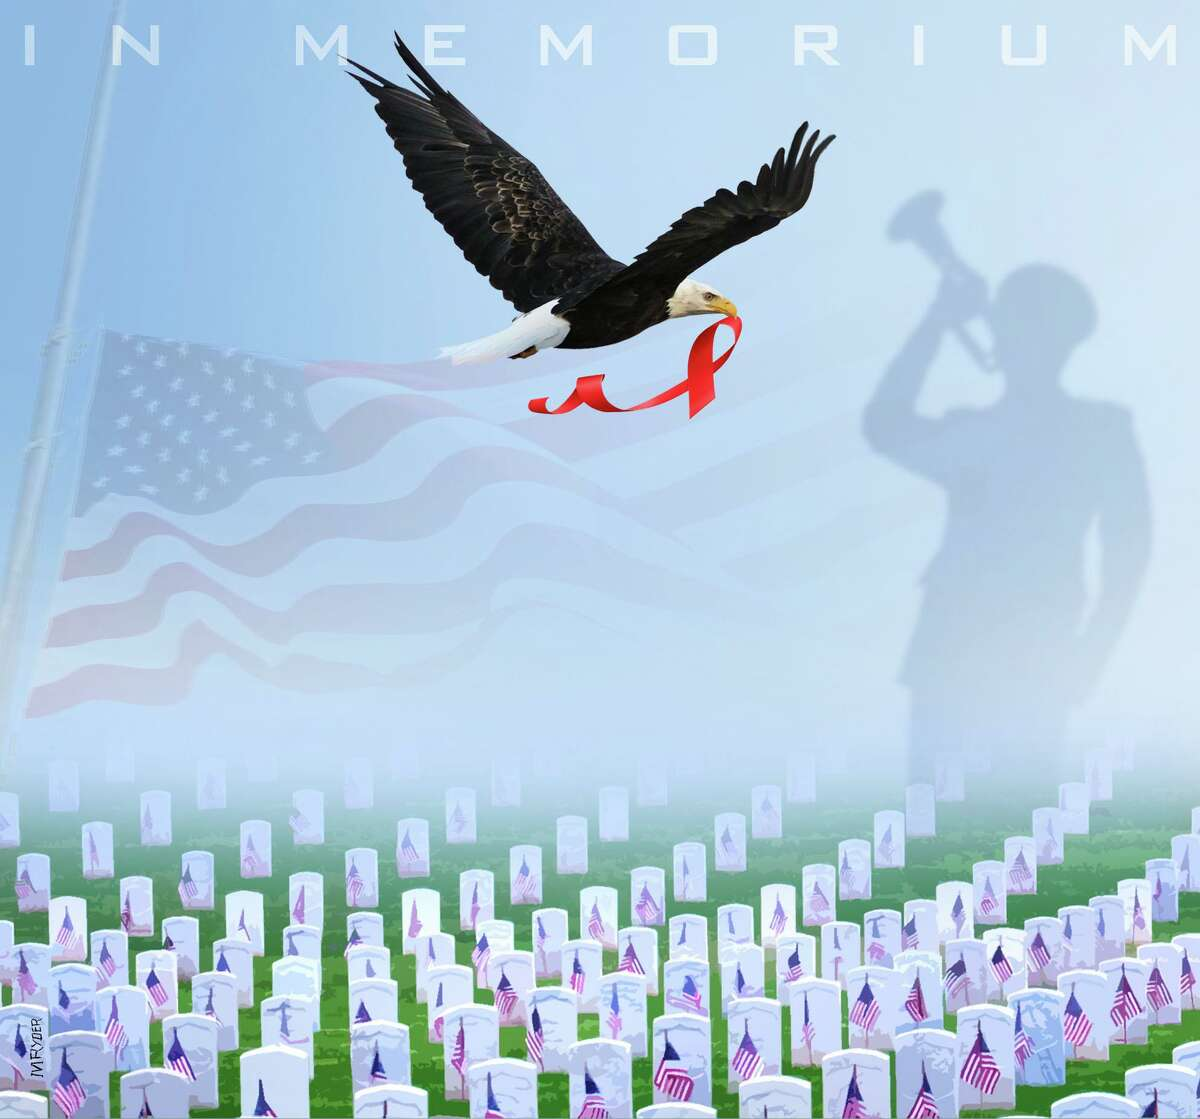 This artwork by M. Ryder refers to the Memorial Day holiday commemorating the sacrifices made by our military personnel